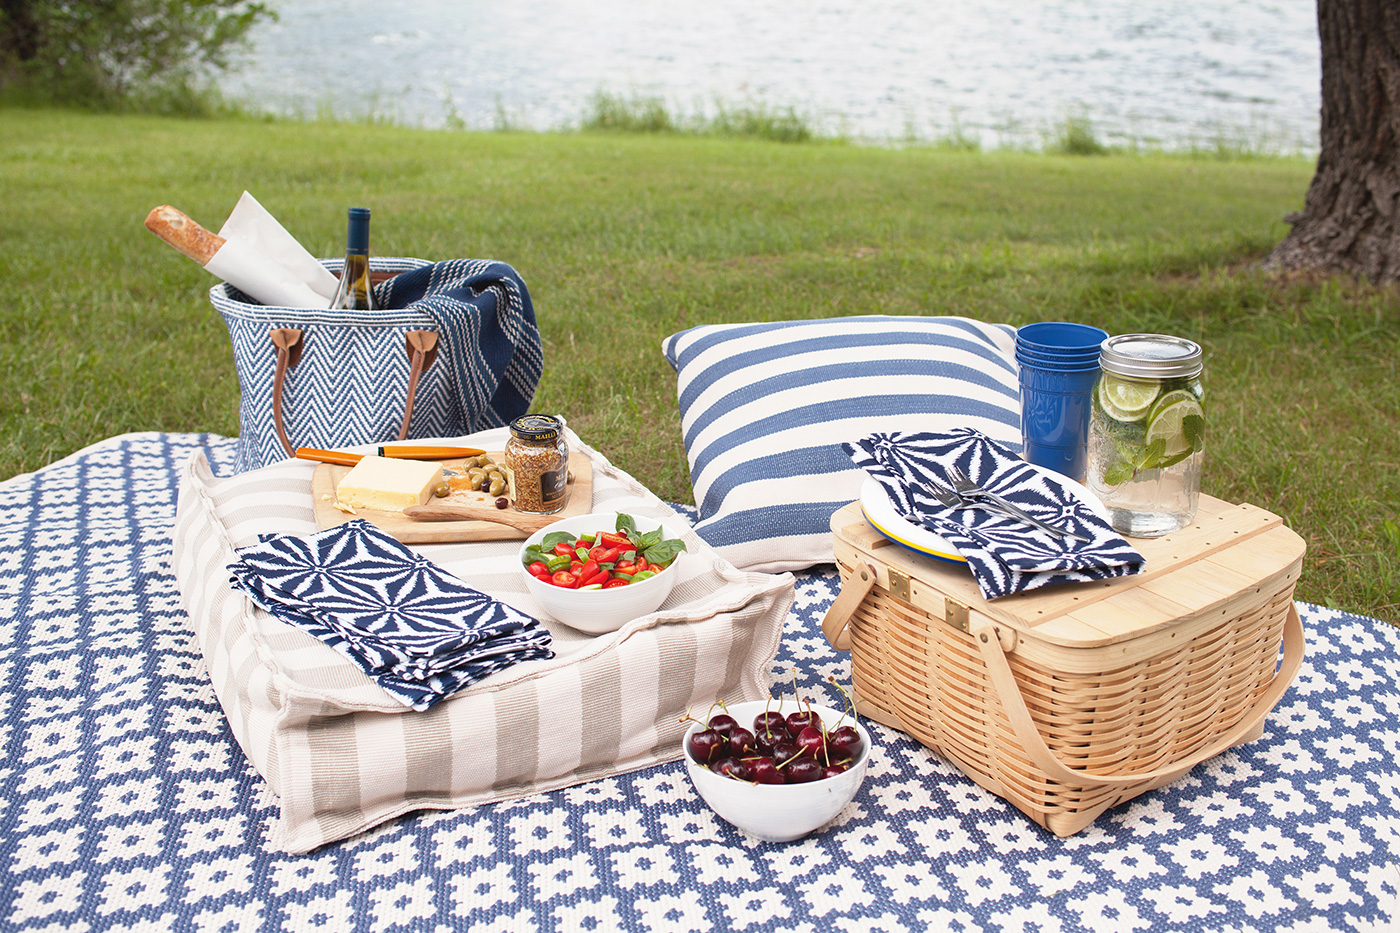 Indoor-outdoor rugs Wayland Trunk Show